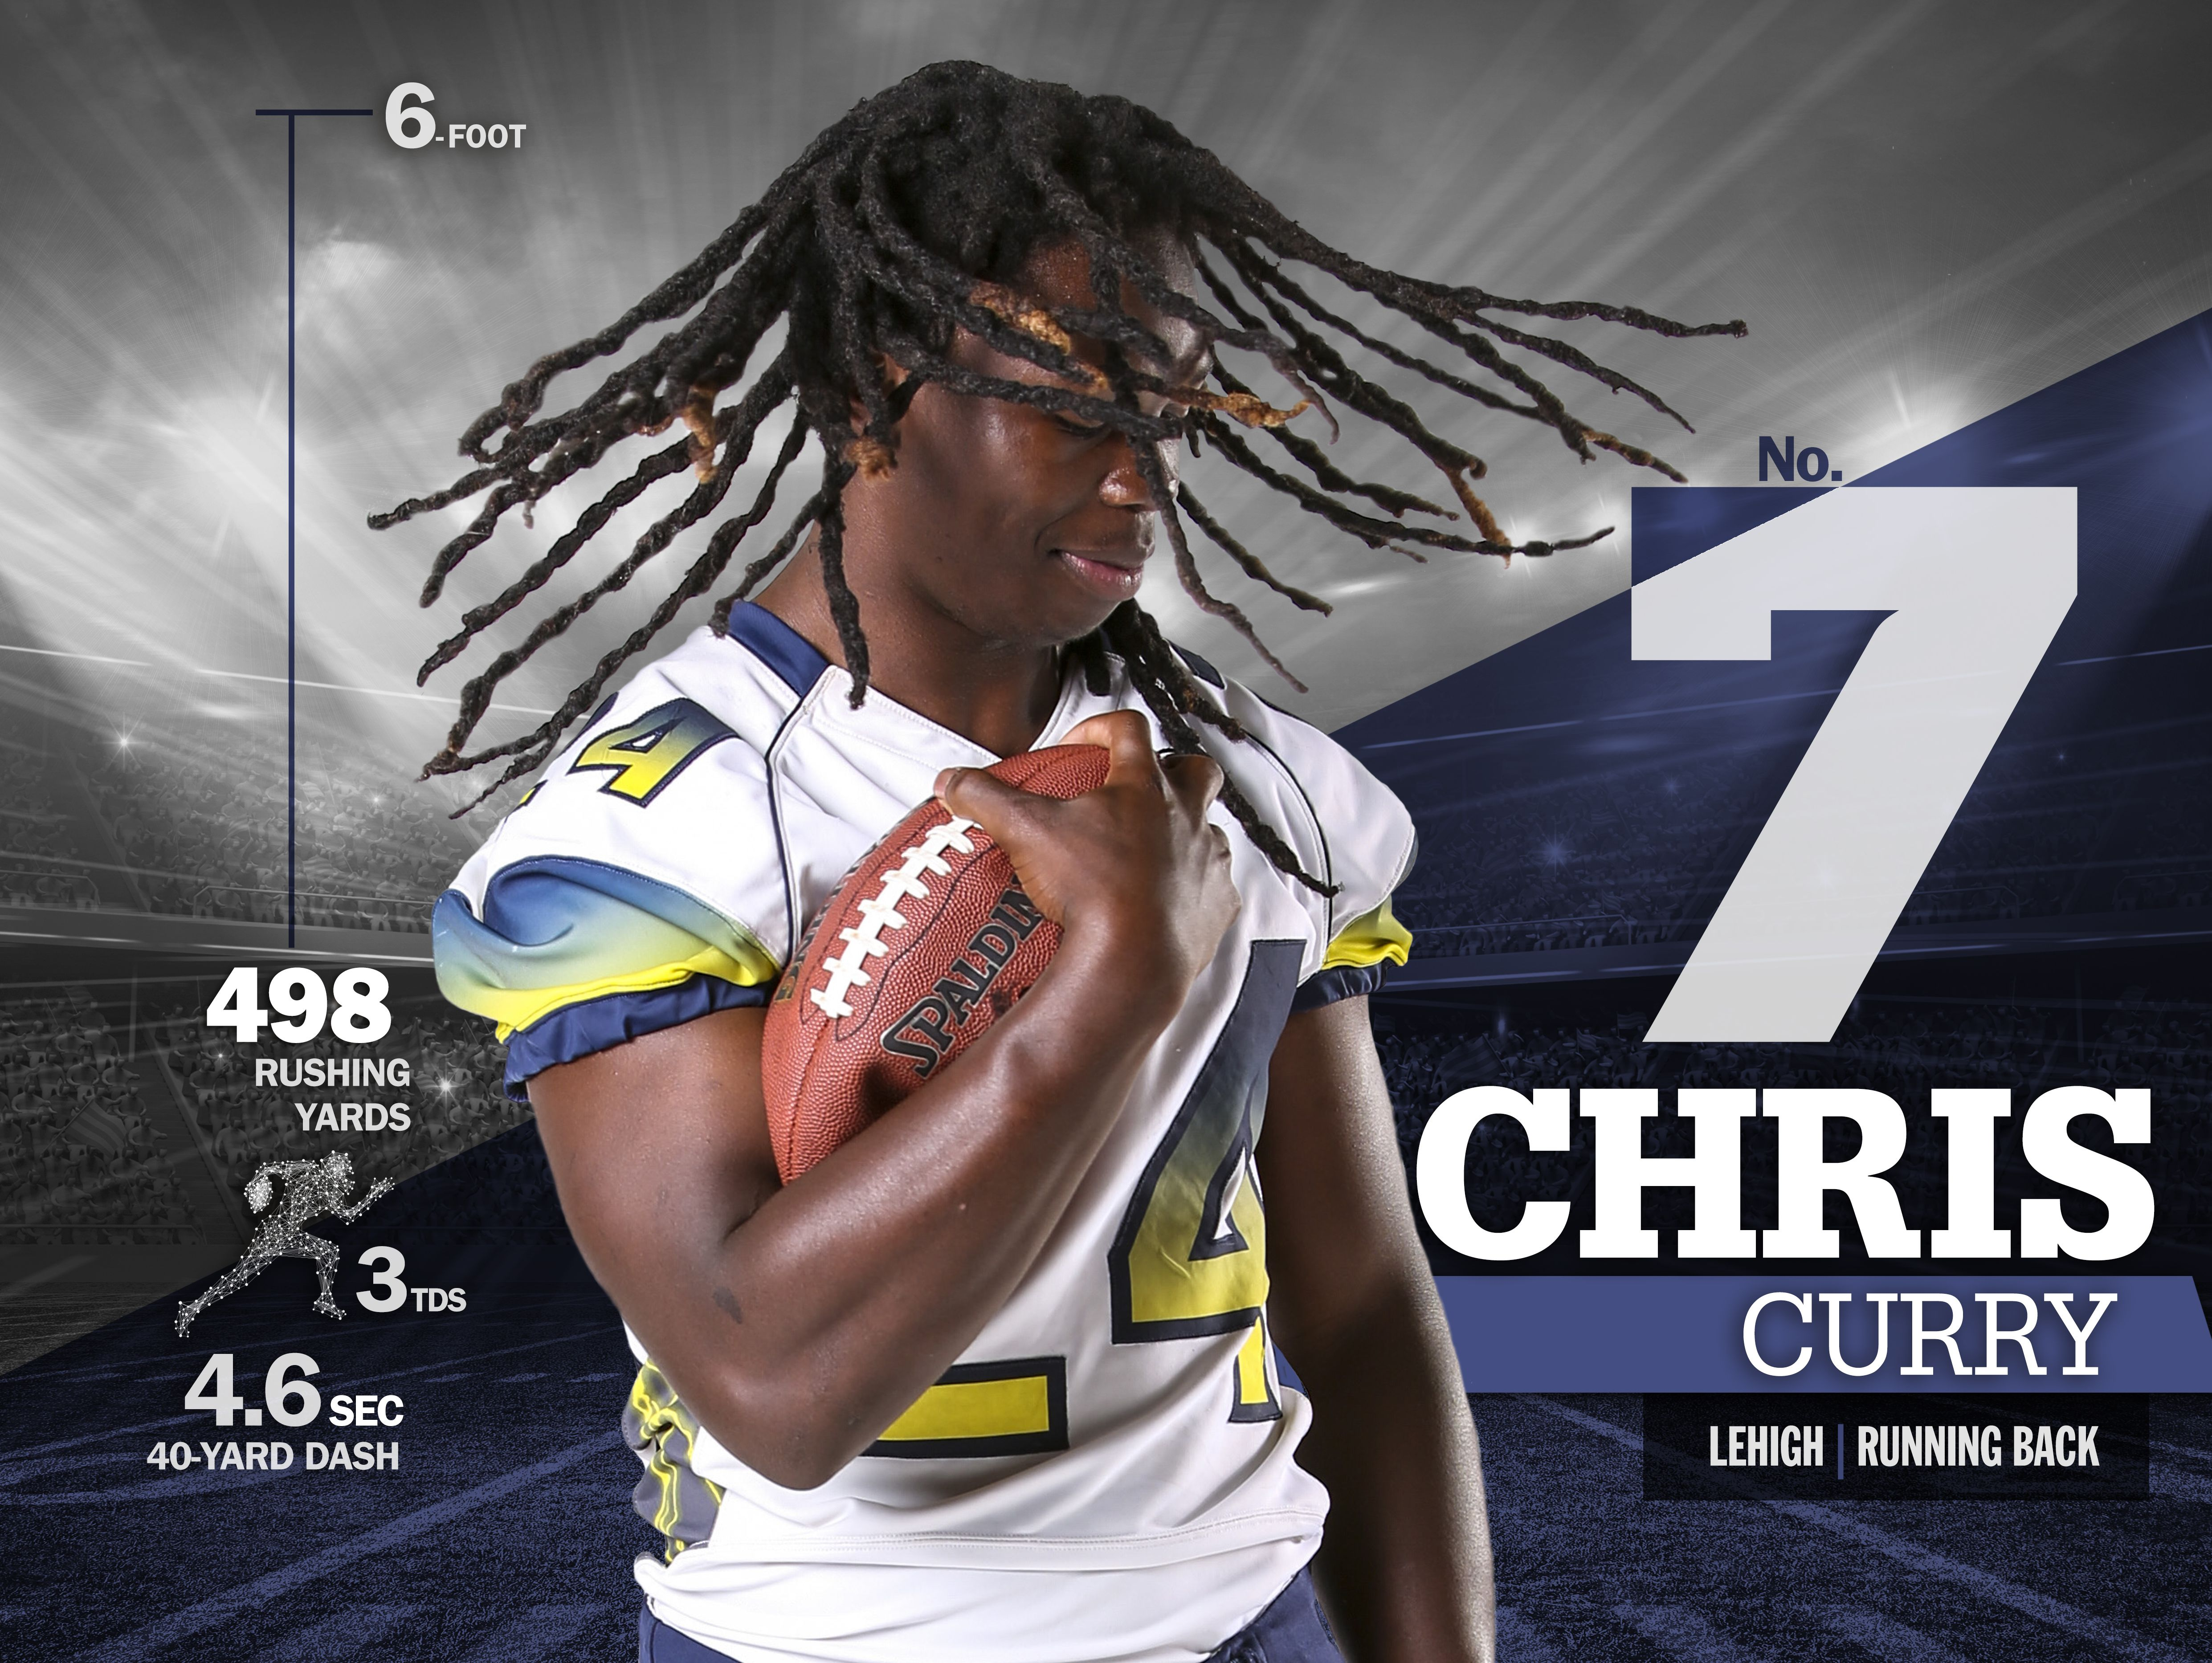 Chris Curry was selected as No. 7 on the The News-Press' High School Football Big 15.